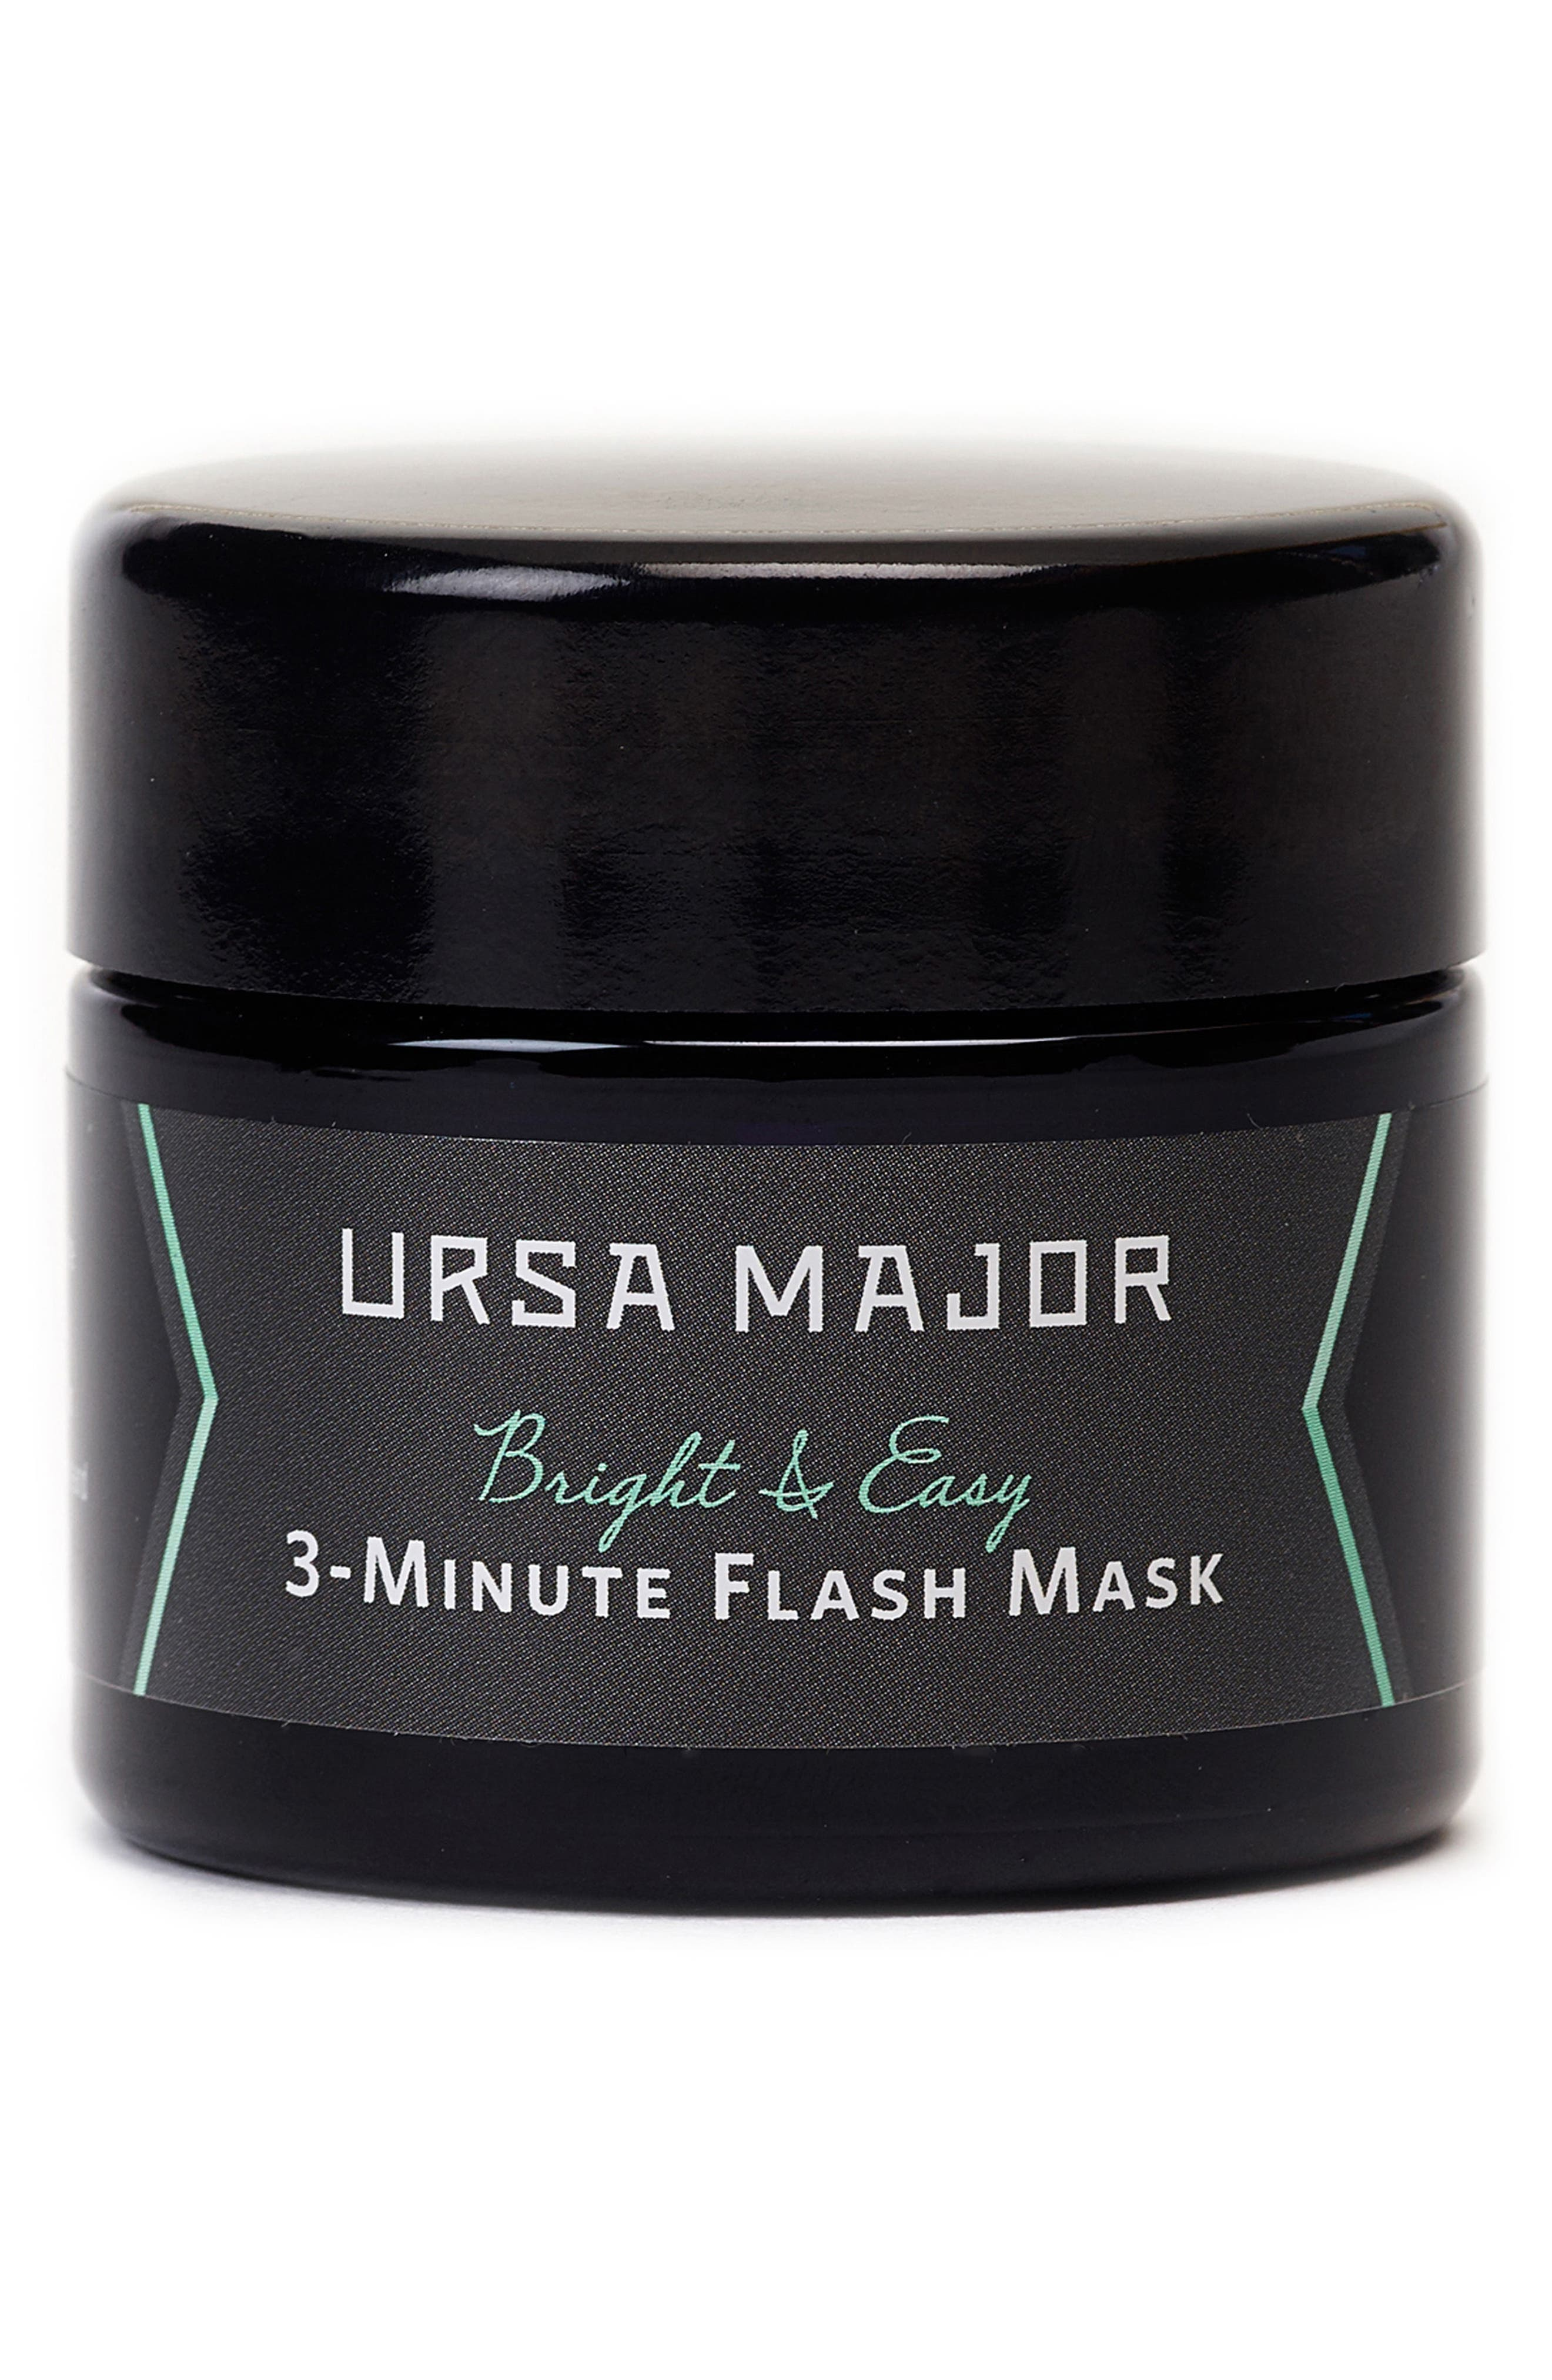 Bright & Easy 3-Minute Flash Mask,                             Main thumbnail 1, color,                             No Color